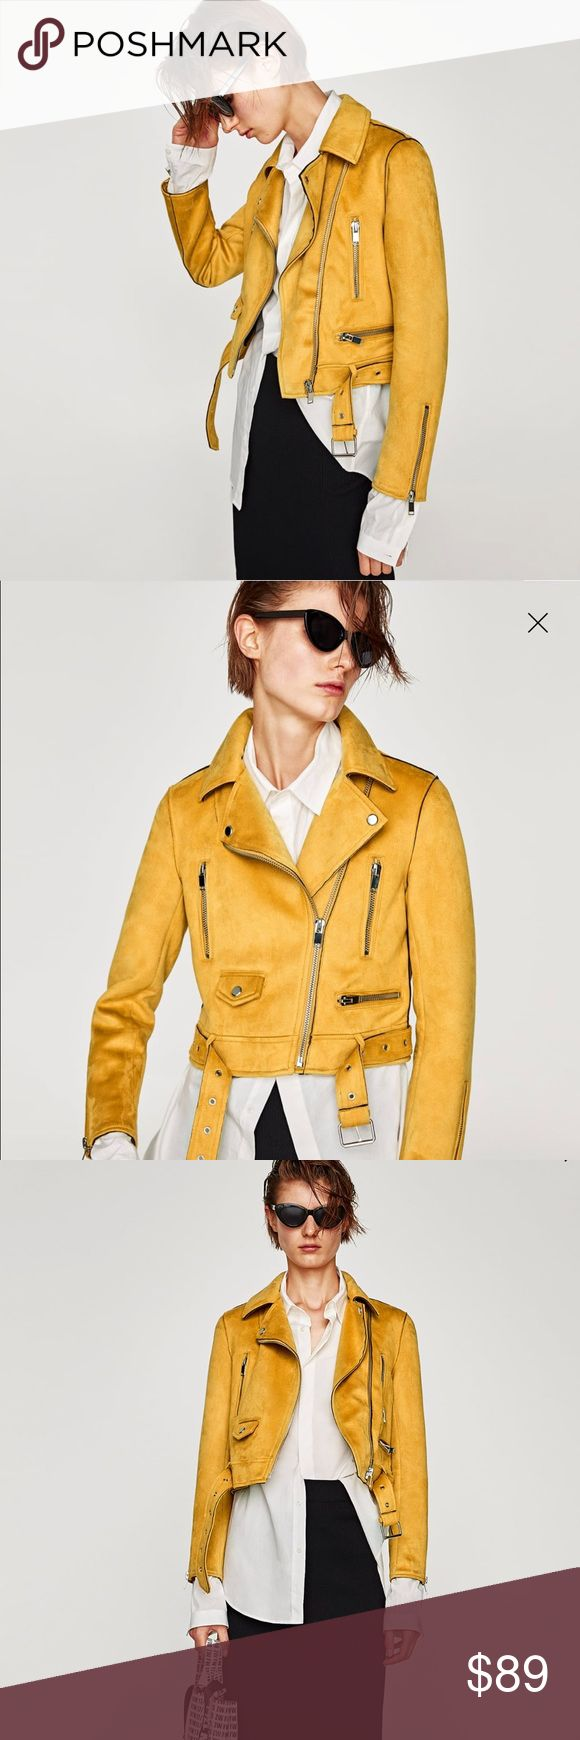 Zara Yellow / Mustard Faux Suede Biker Jacket Size Large. SUPER amazing and cute yellow suede jacket from Zara. Can do venmoooo or PayPal also Zara Jackets & Coats